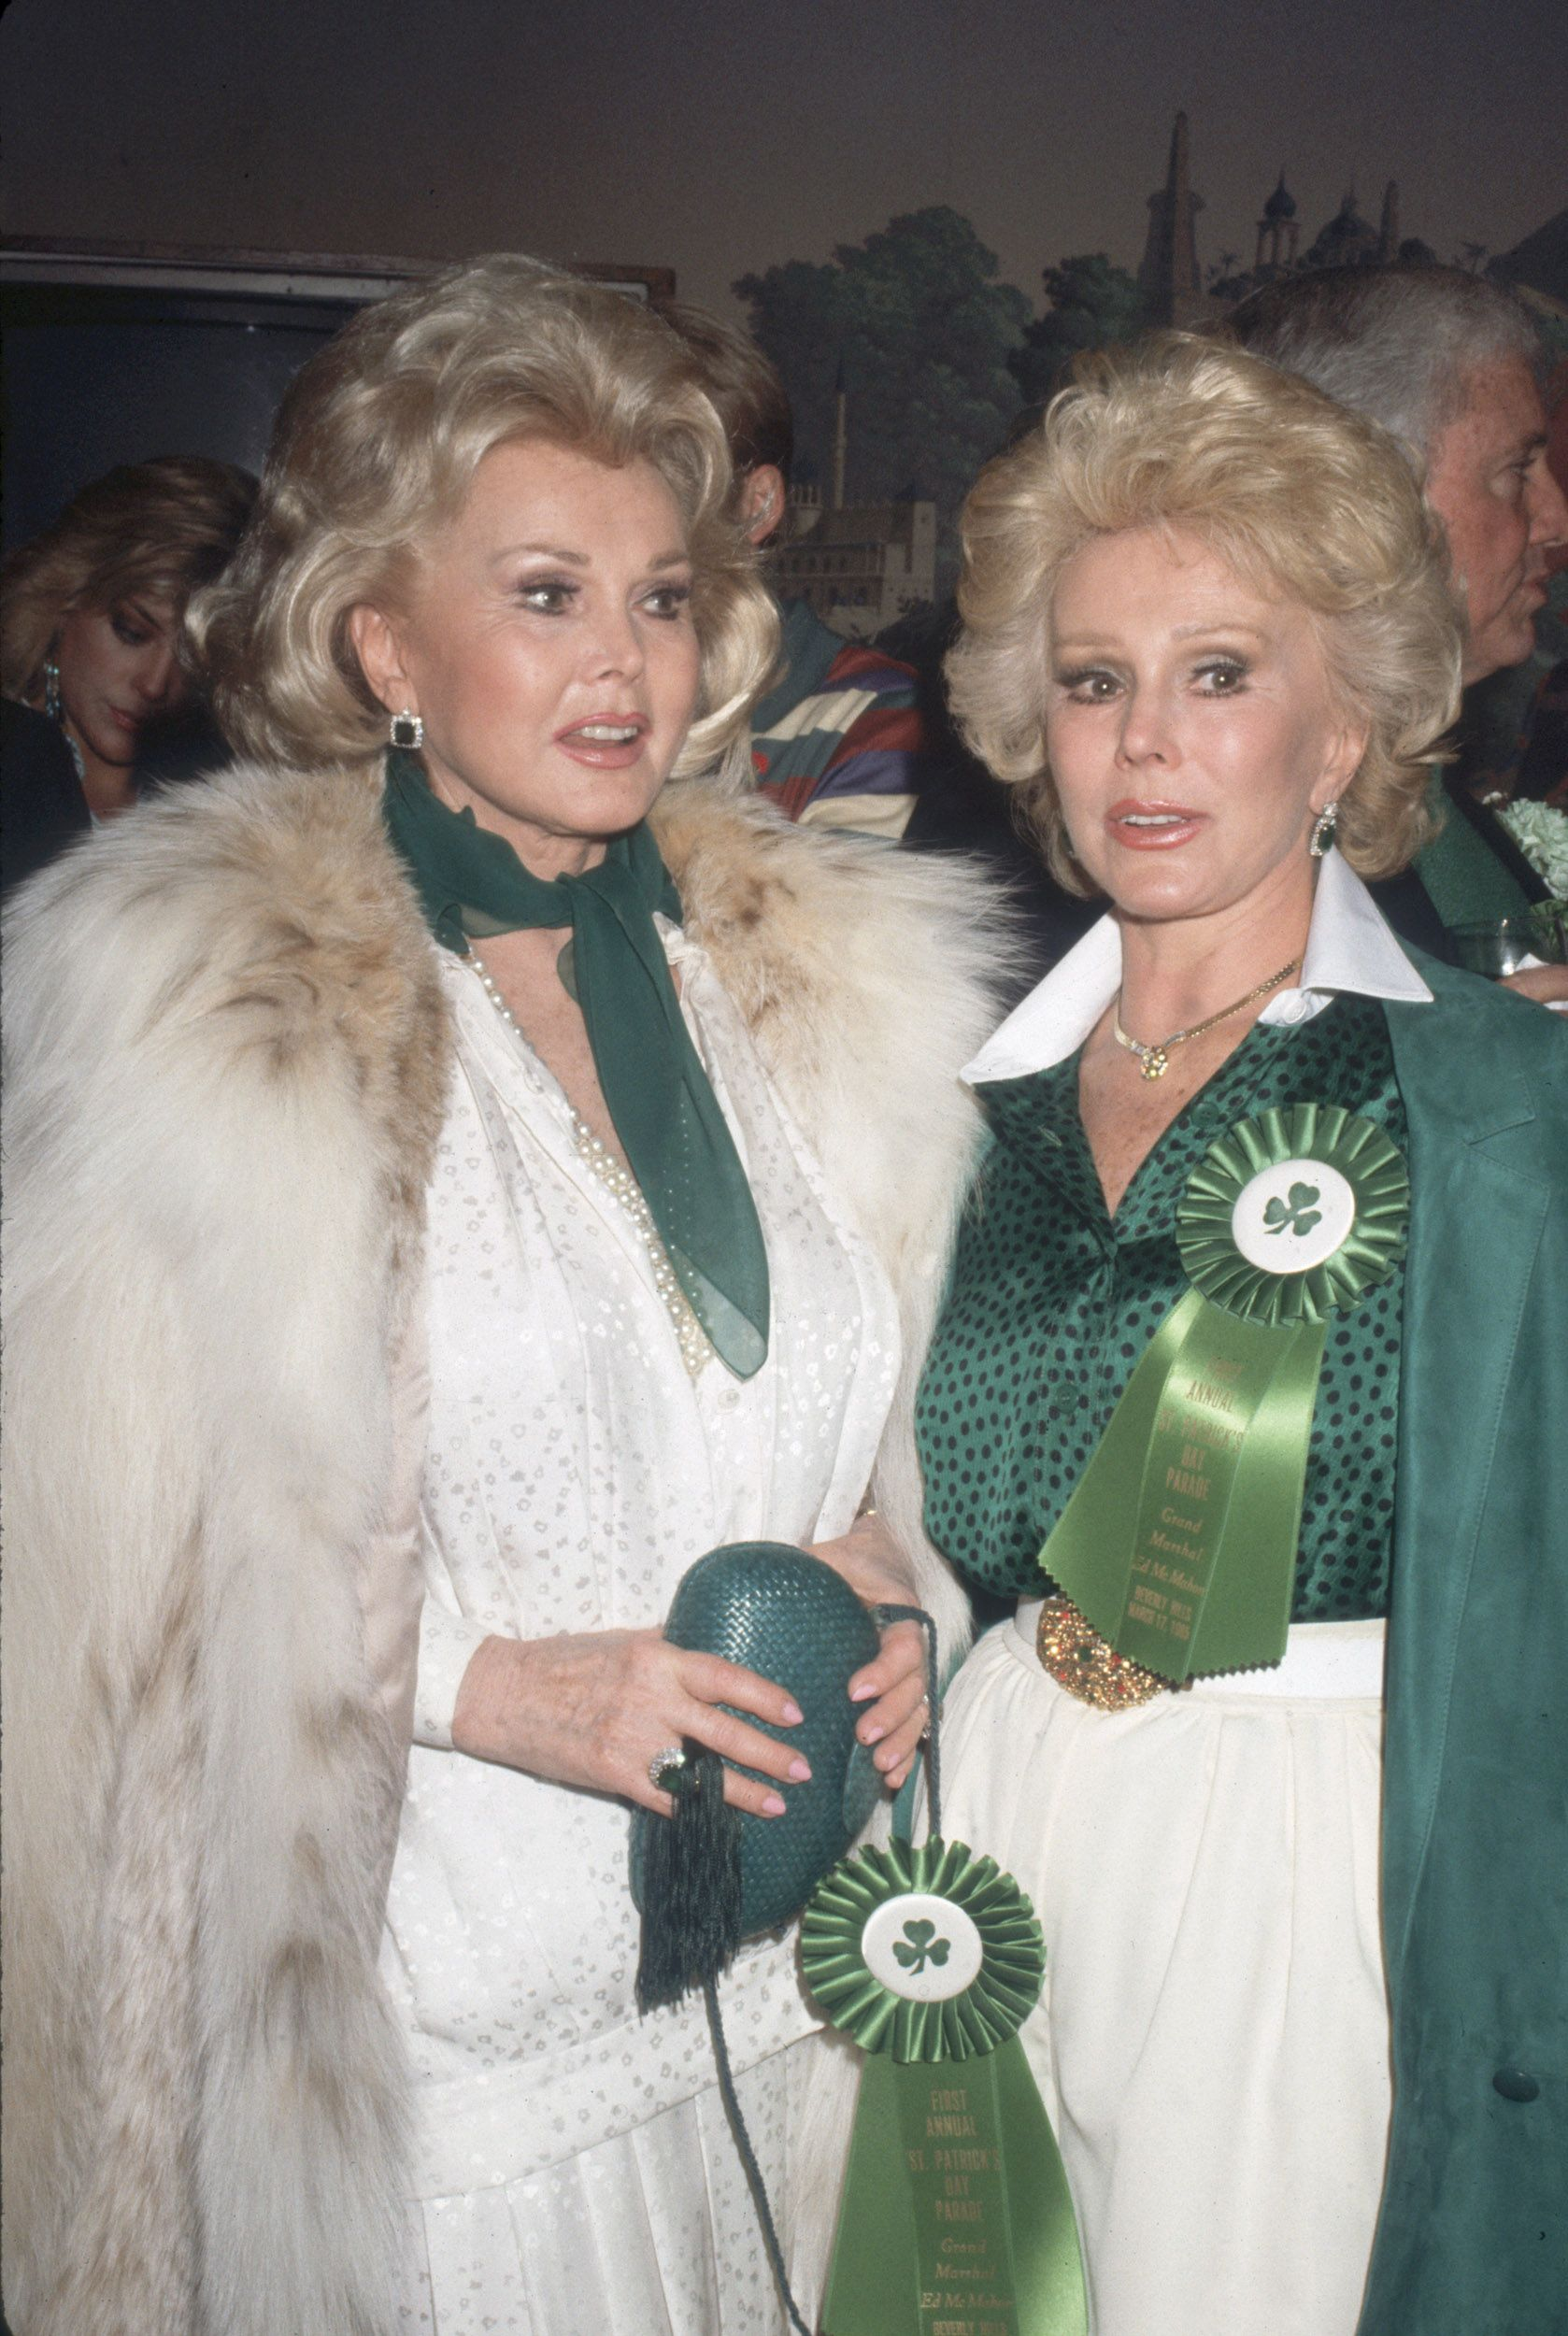 Hungarian-born sisters Zsa Zsa Gabor and Eva Gabor pose together at Jimmy's Restaurant, both sporting green ribbons from the First Annual St. Patrick's Day parade, Beverly Hills, California, March 17, 1985.